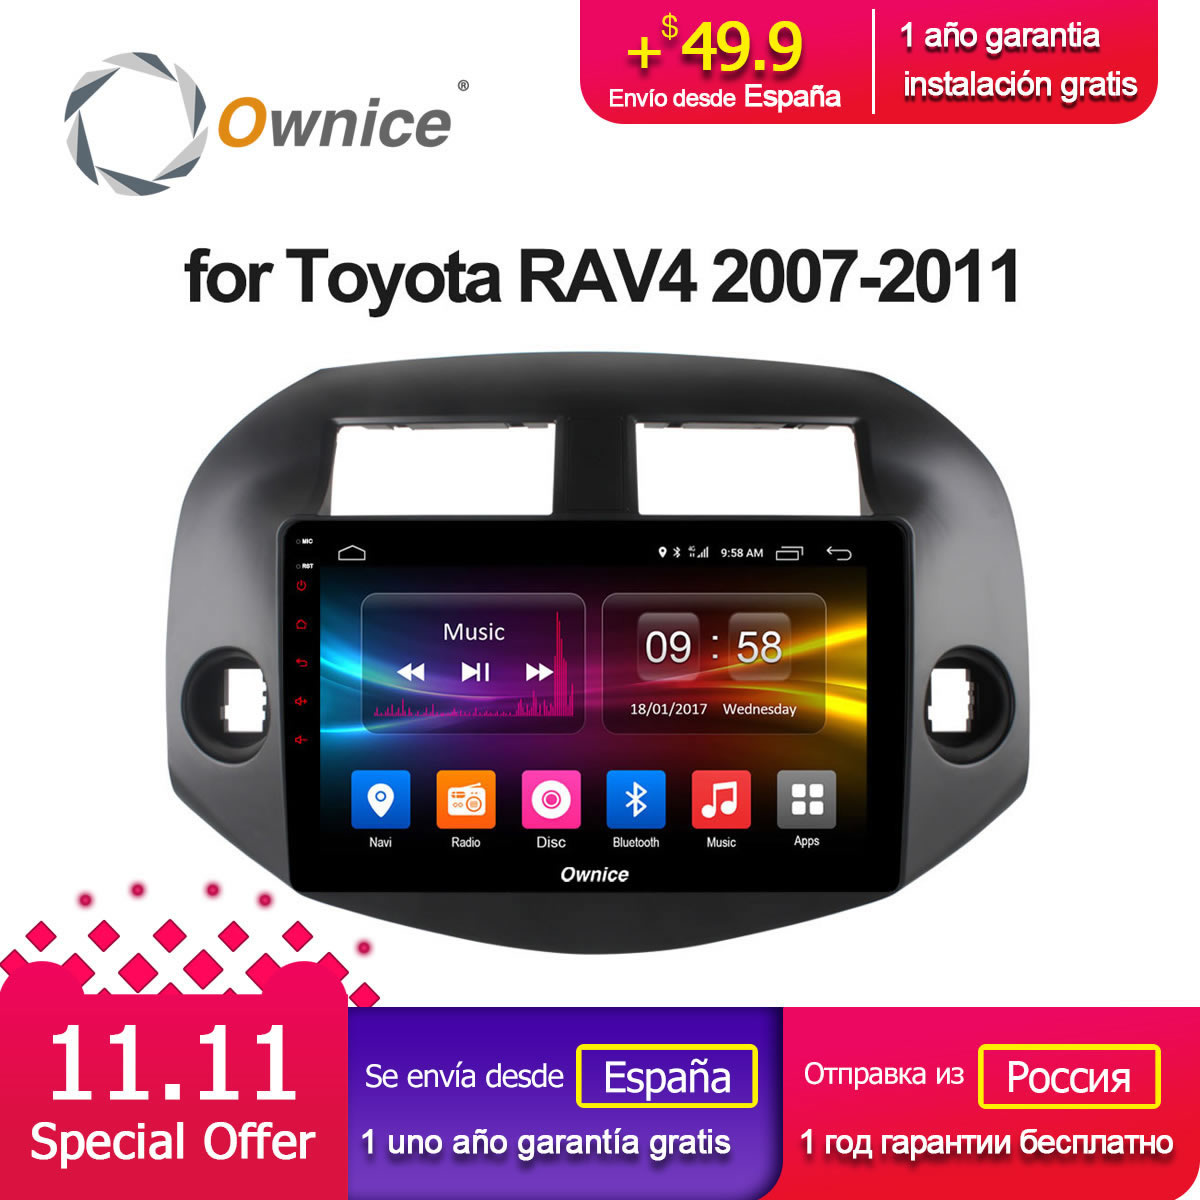 Ownice C500+ G10 Car Radio player octa 8 Core Android 8.1 For Toyota Rav4 2007 2008 2009 2010 2011 Radio GPS Support DVD 4G DAB+ 10 1 ownice c500 g10 octa 8 core android 8 1 car dvd gps player for toyota tundra 2007 2013 sequoia 2008 2018 stereo radio